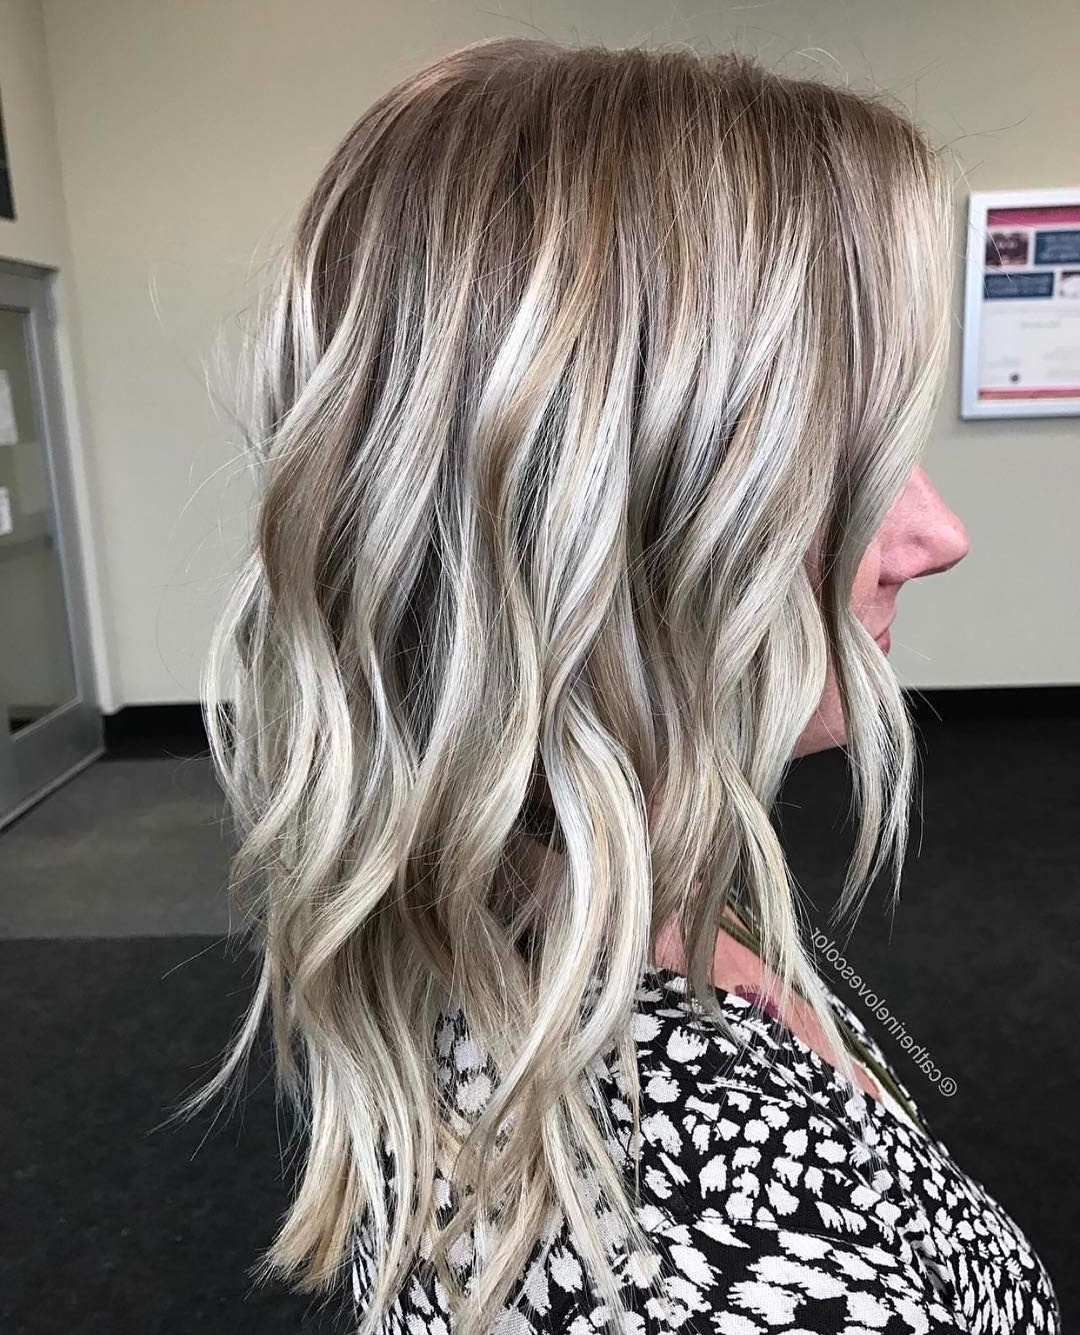 Well Liked Long Bob Blonde Hairstyles With Babylights Inside 20 Adorable Ash Blonde Hairstyles To Try: Hair Color Ideas (View 5 of 20)